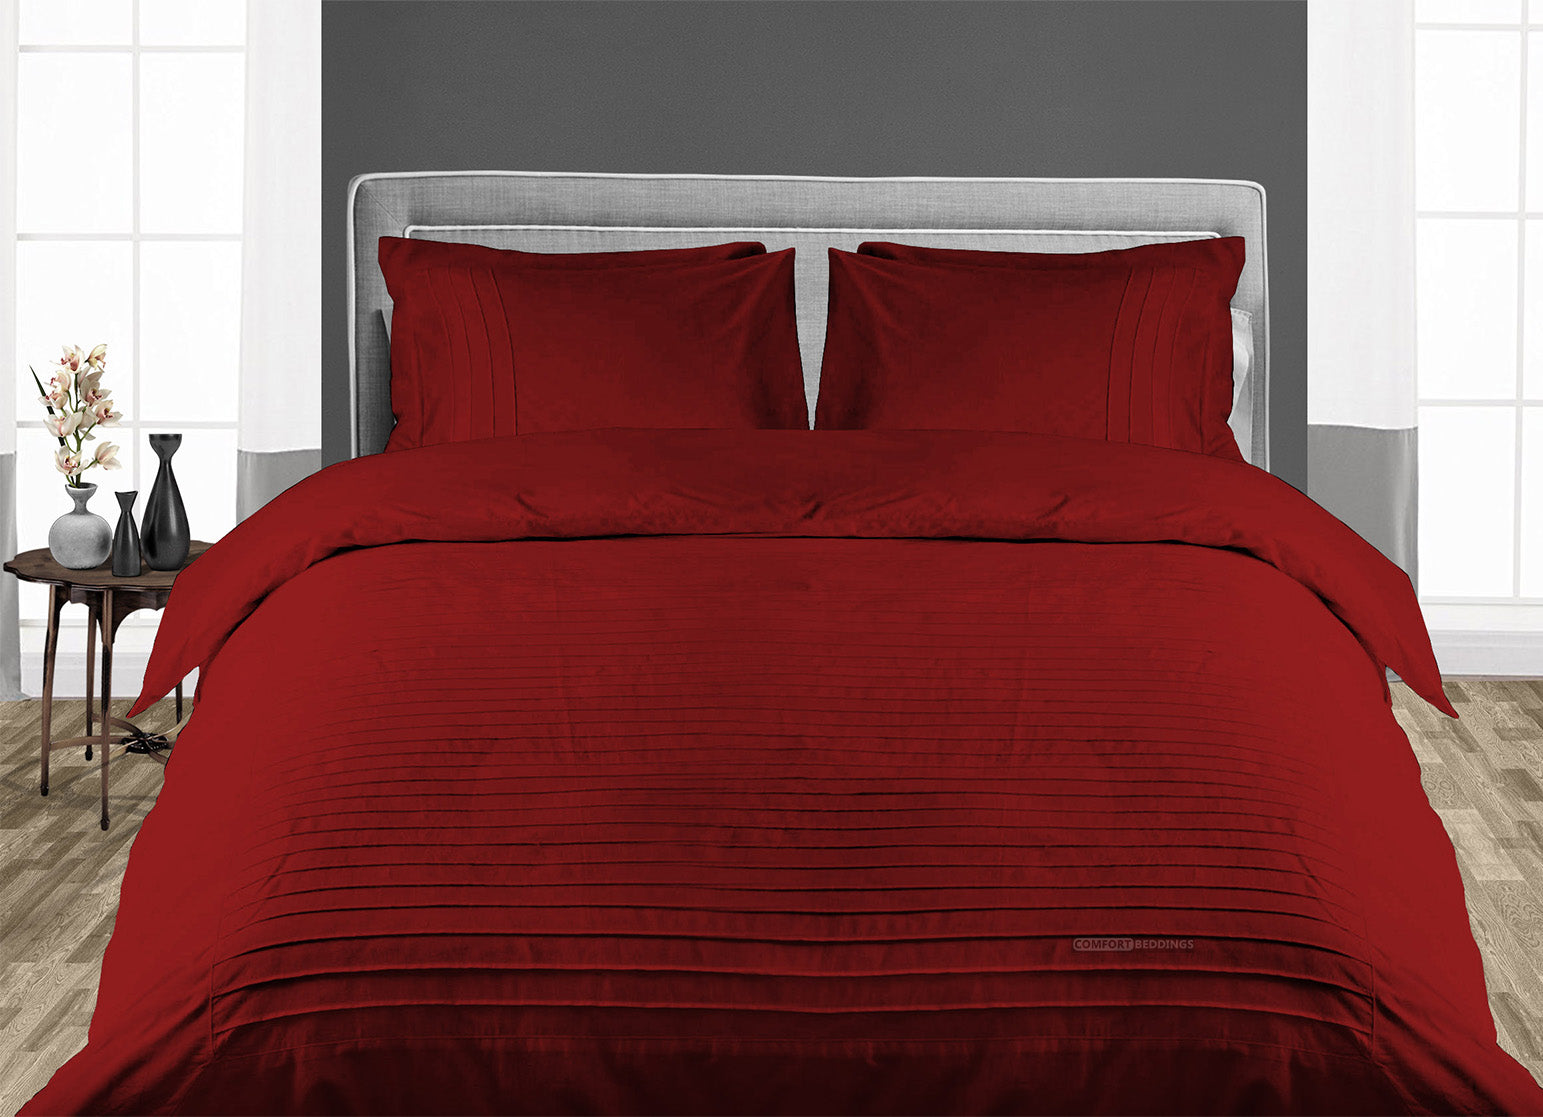 Elegant Burgundy Moroccan Streak Duvet Cover And Pillowcases